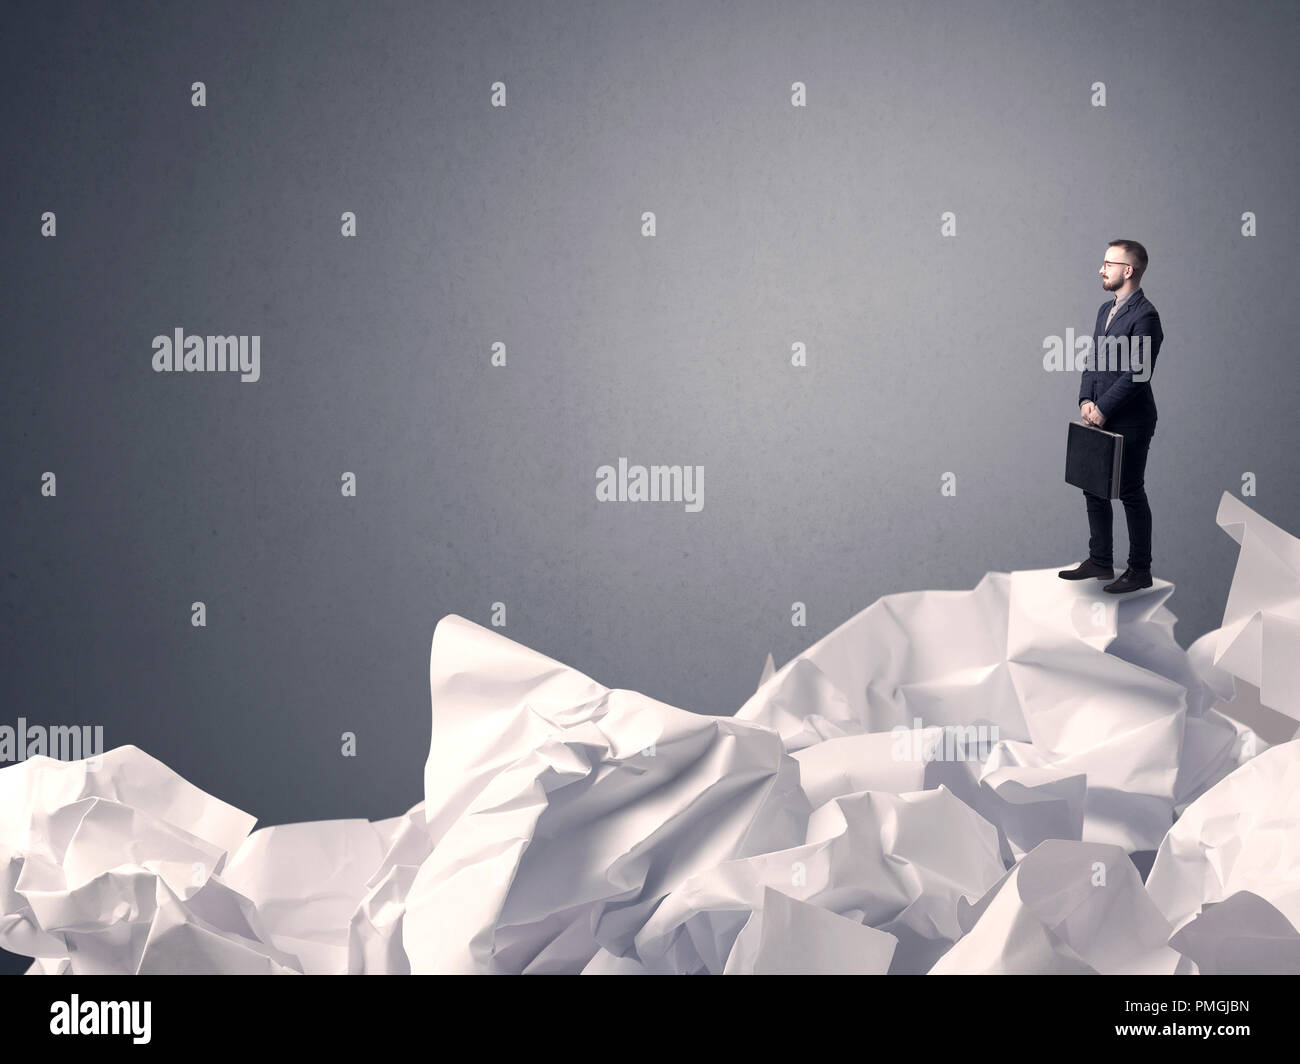 Thoughtful young businessman standing on a pile of crumpled paper with a grey background - Stock Image